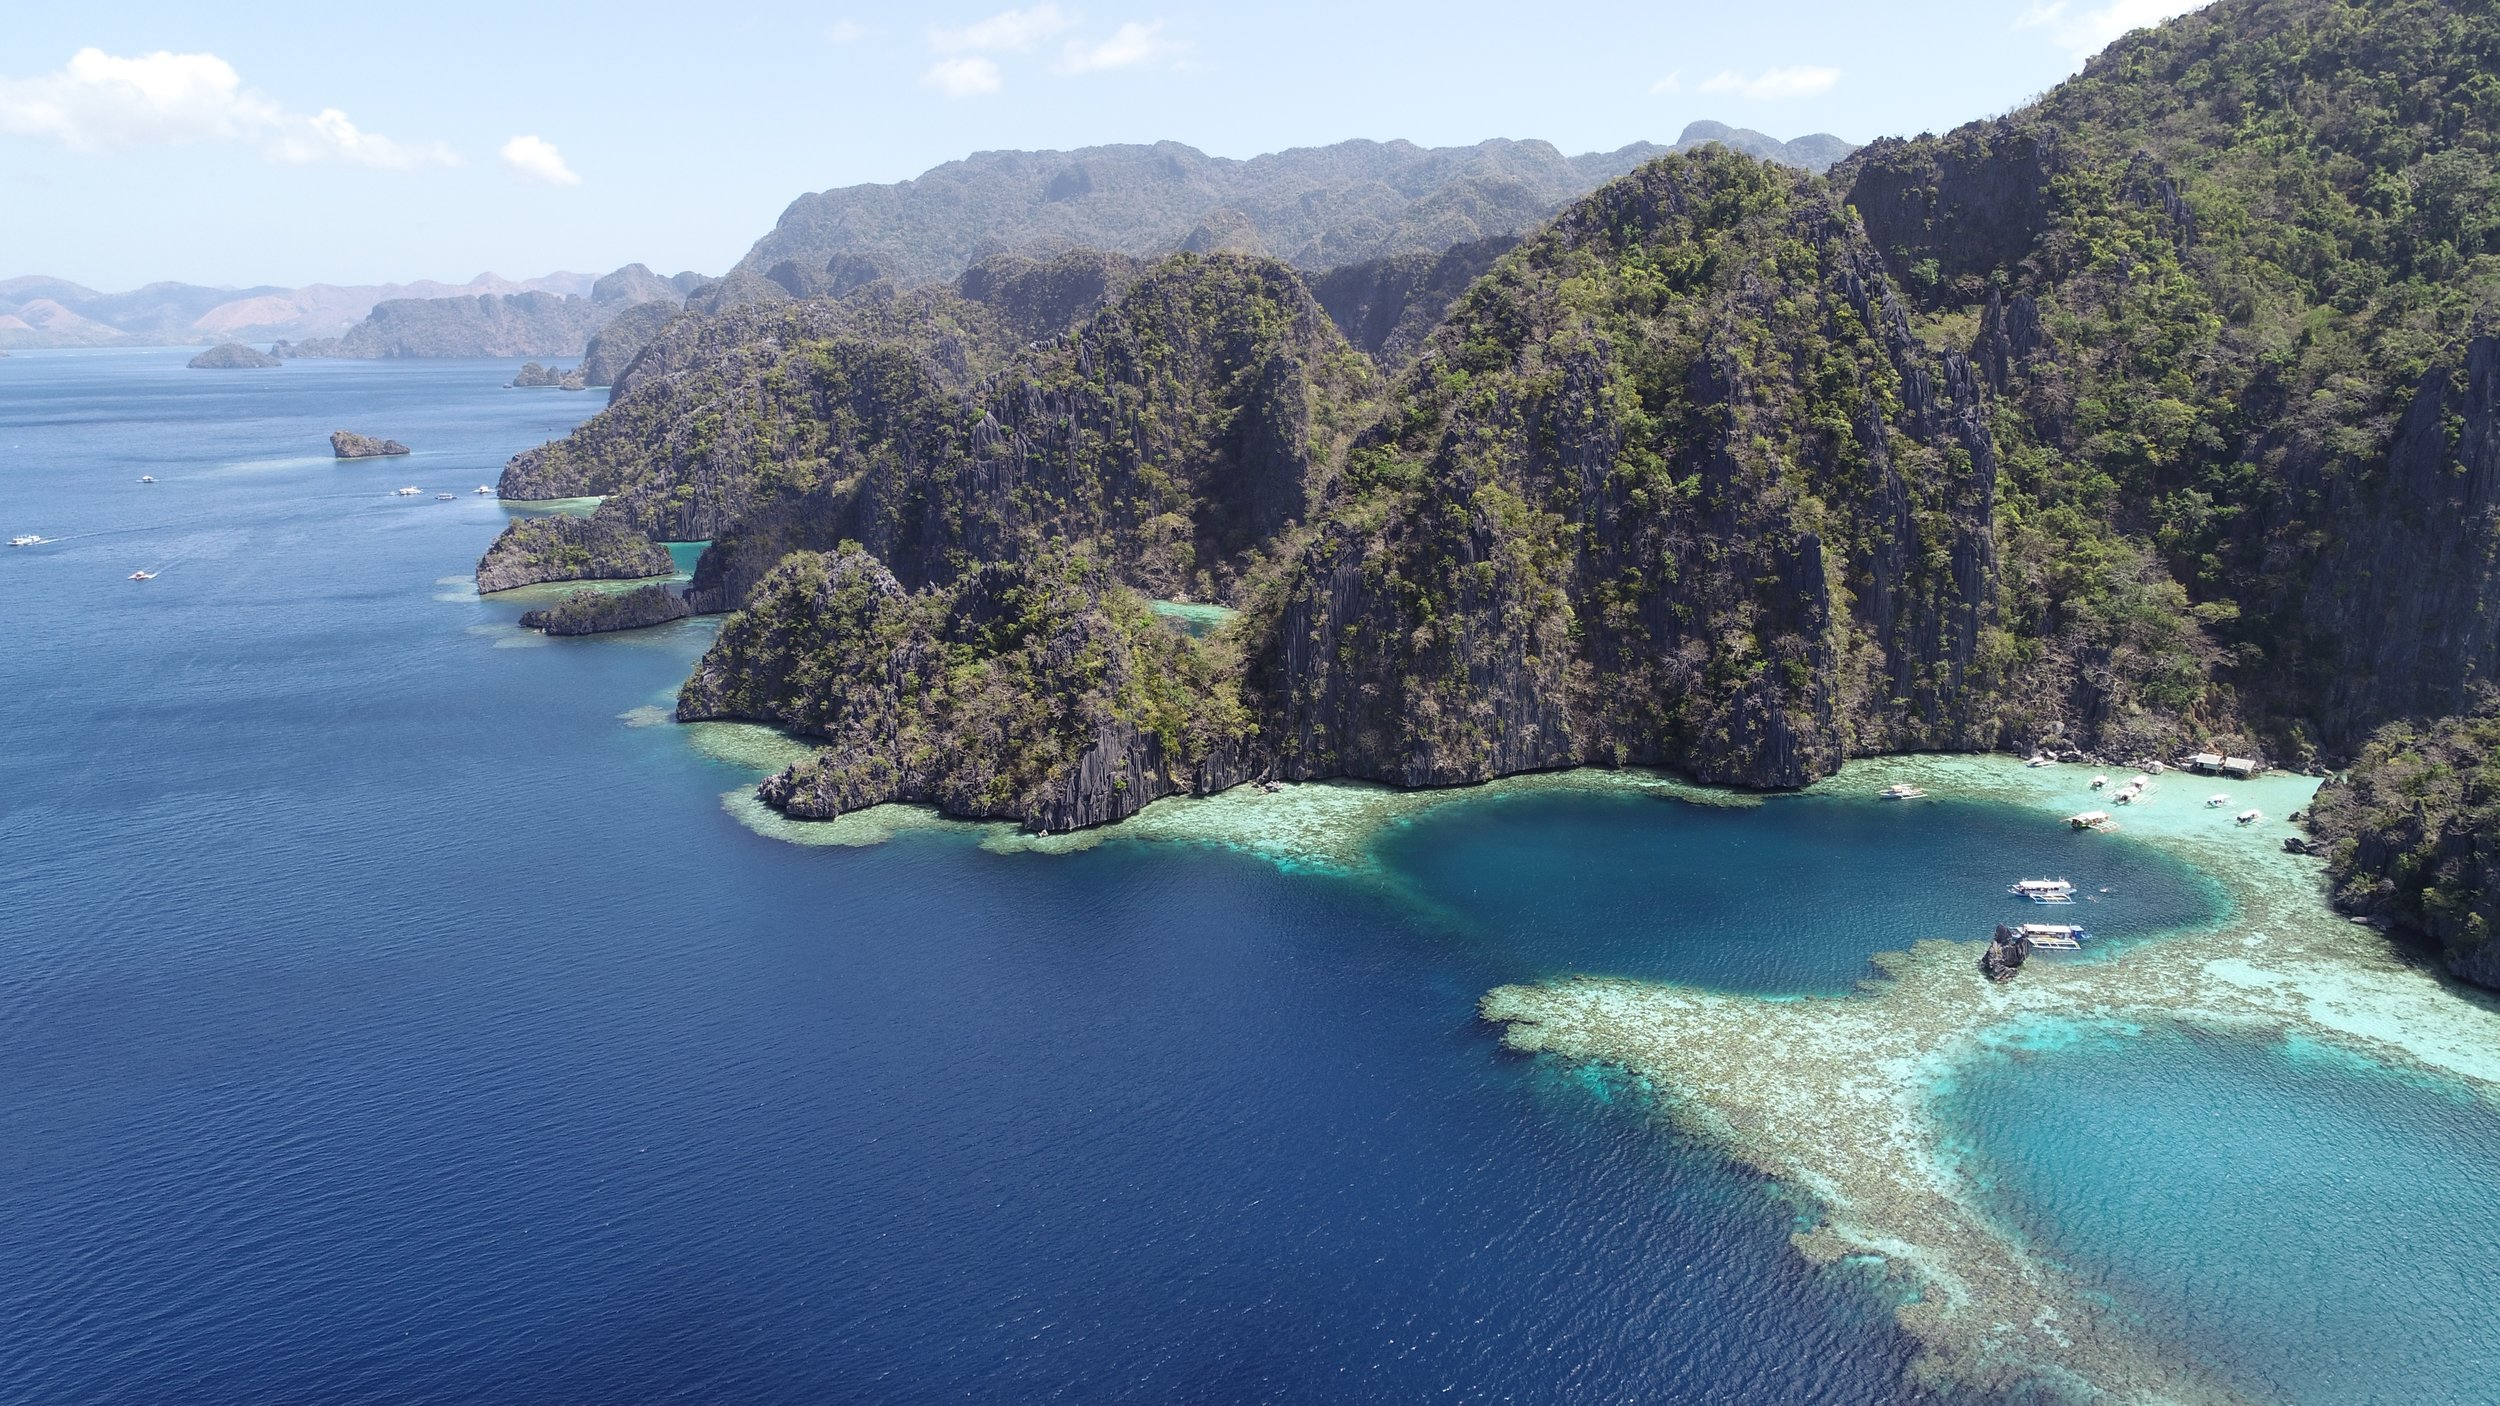 Arriving at Barracuda Lake in Coron, Philippines